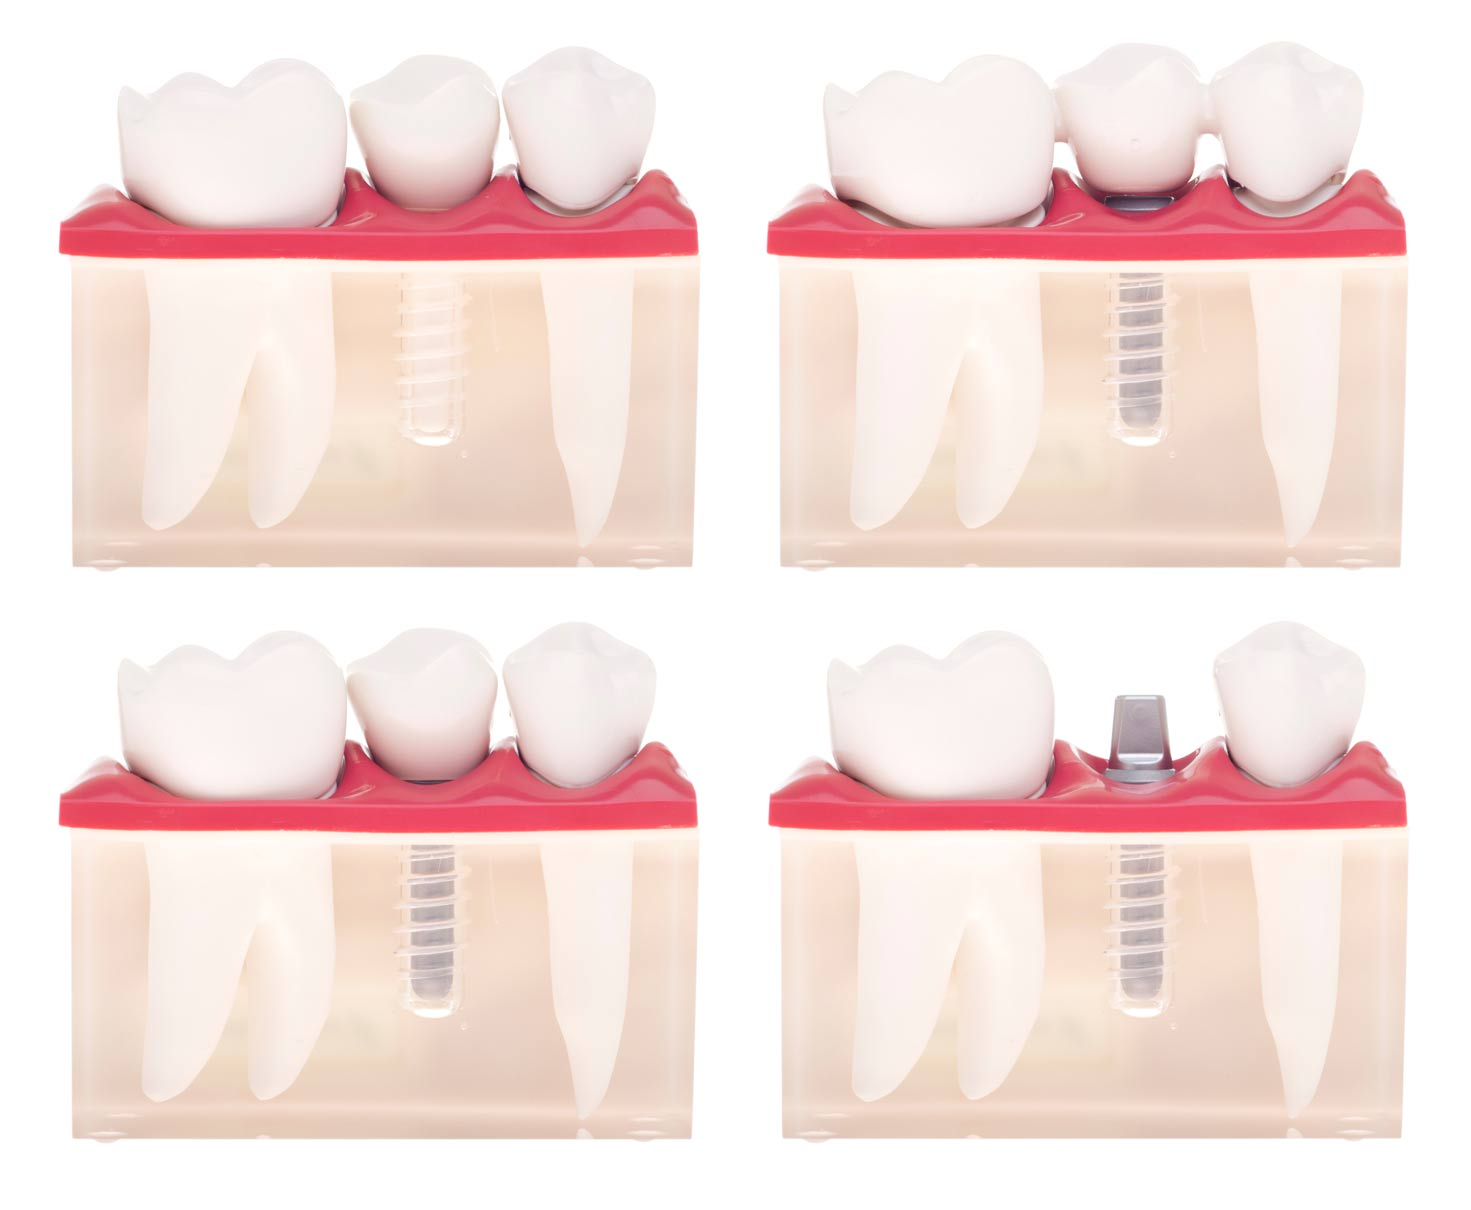 Things You Didn't Know About Dental Implants